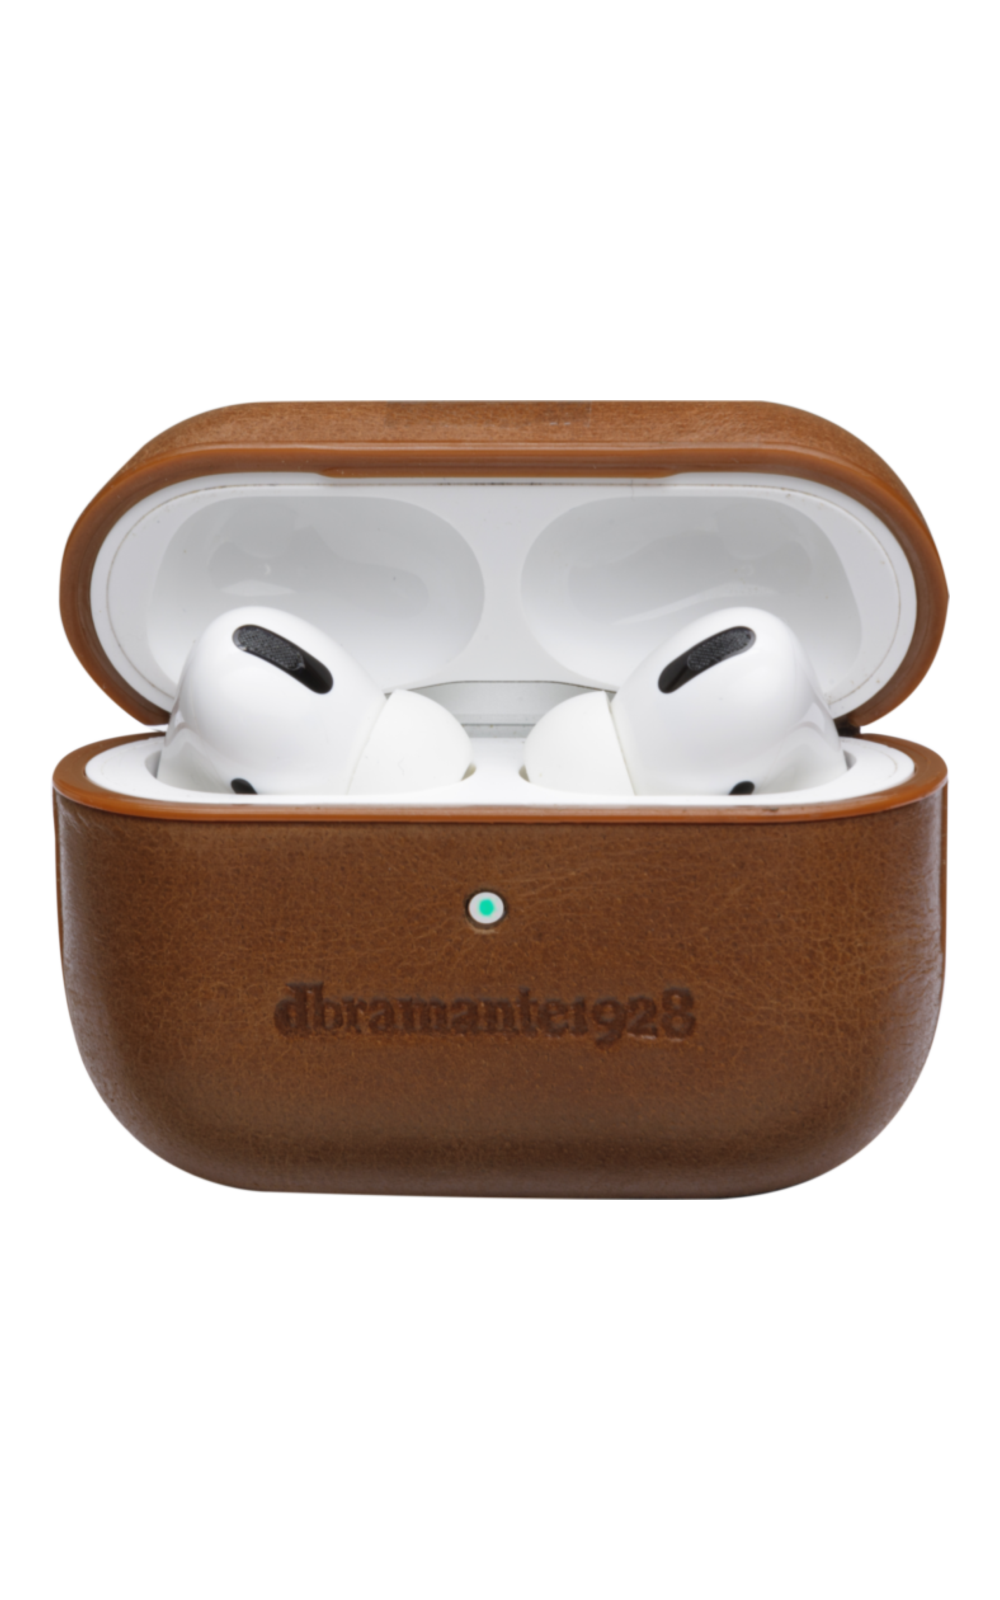 dbramante1928 full-grain leather AirPods Pro Case